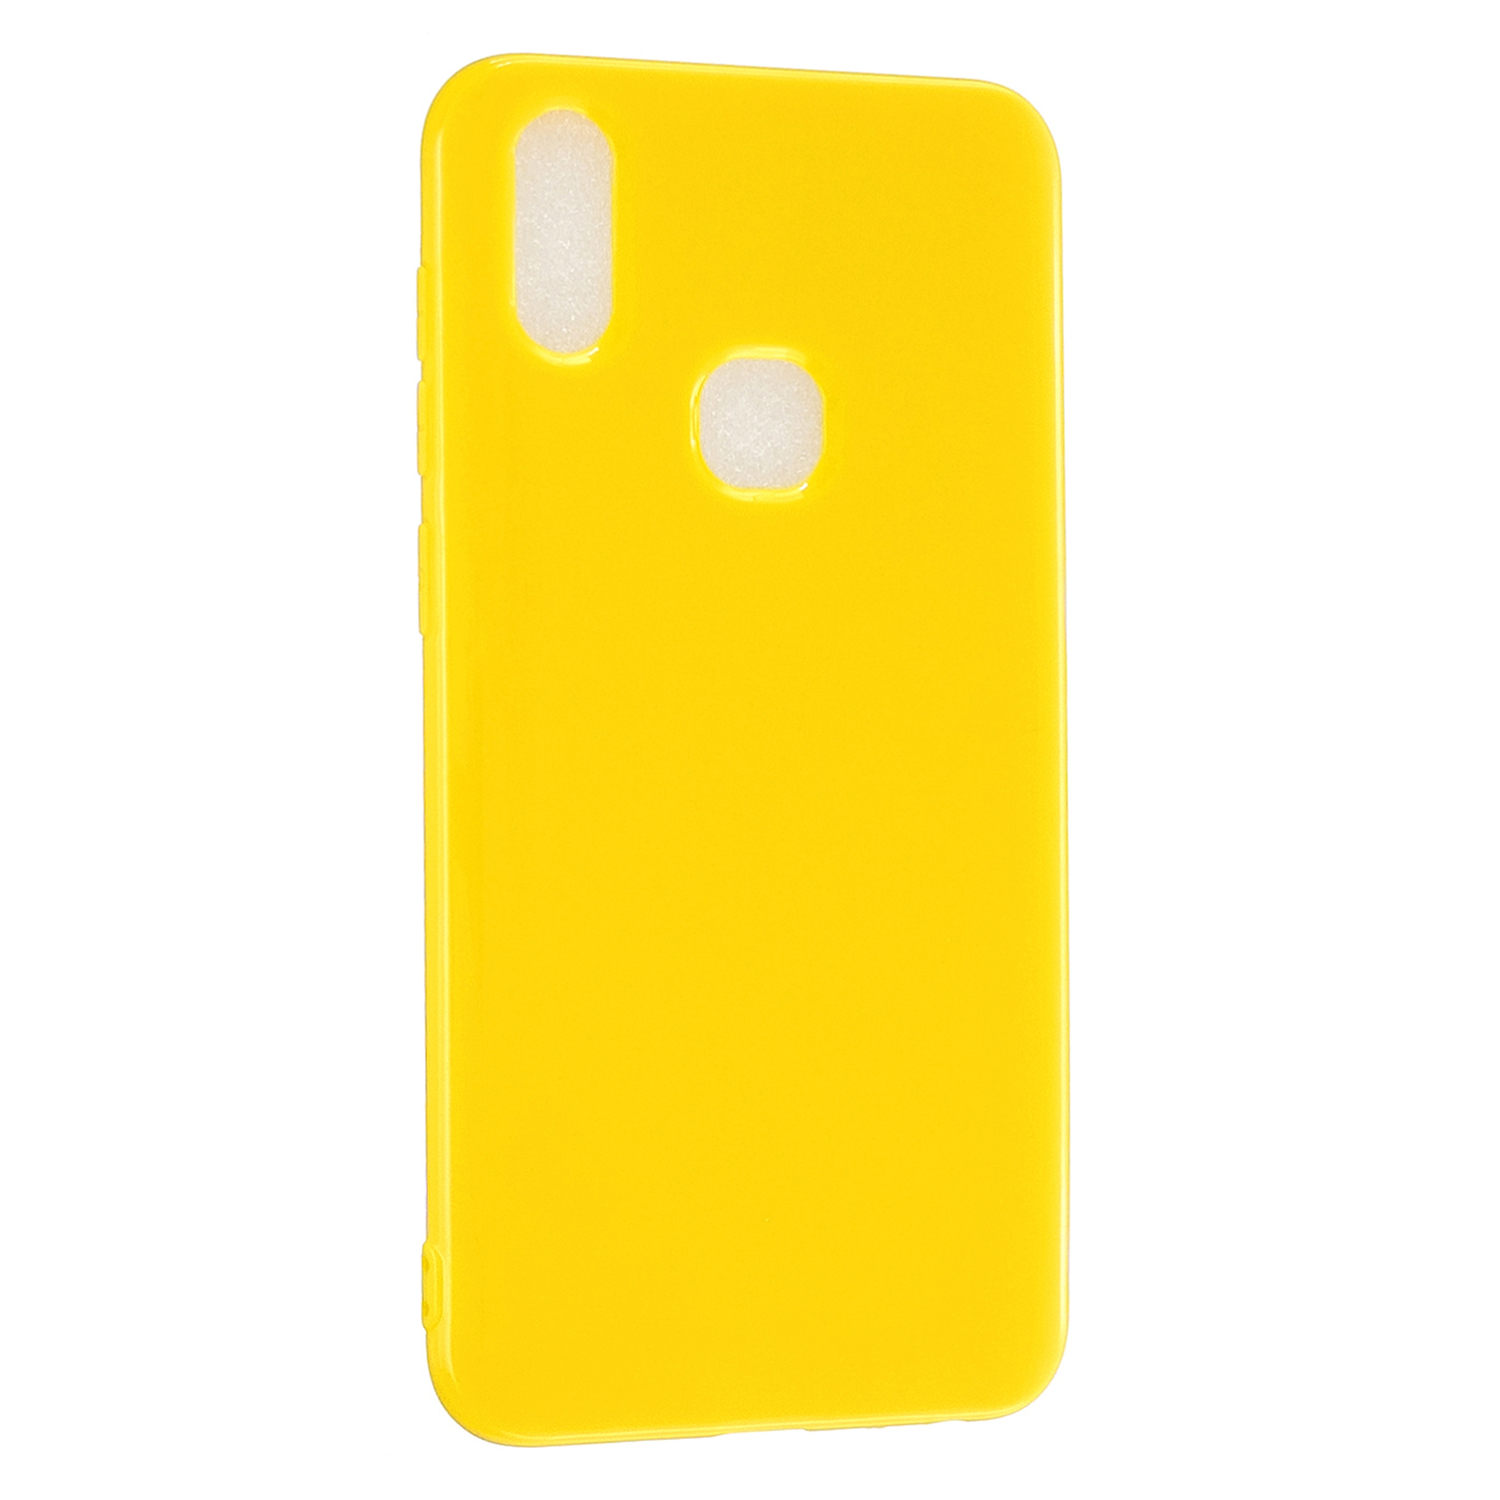 for VIVO Y17/Y3 / Y91/Y95/Y93 Thicken 2.0mm TPU Back Cover Cellphone Case Shell yellow